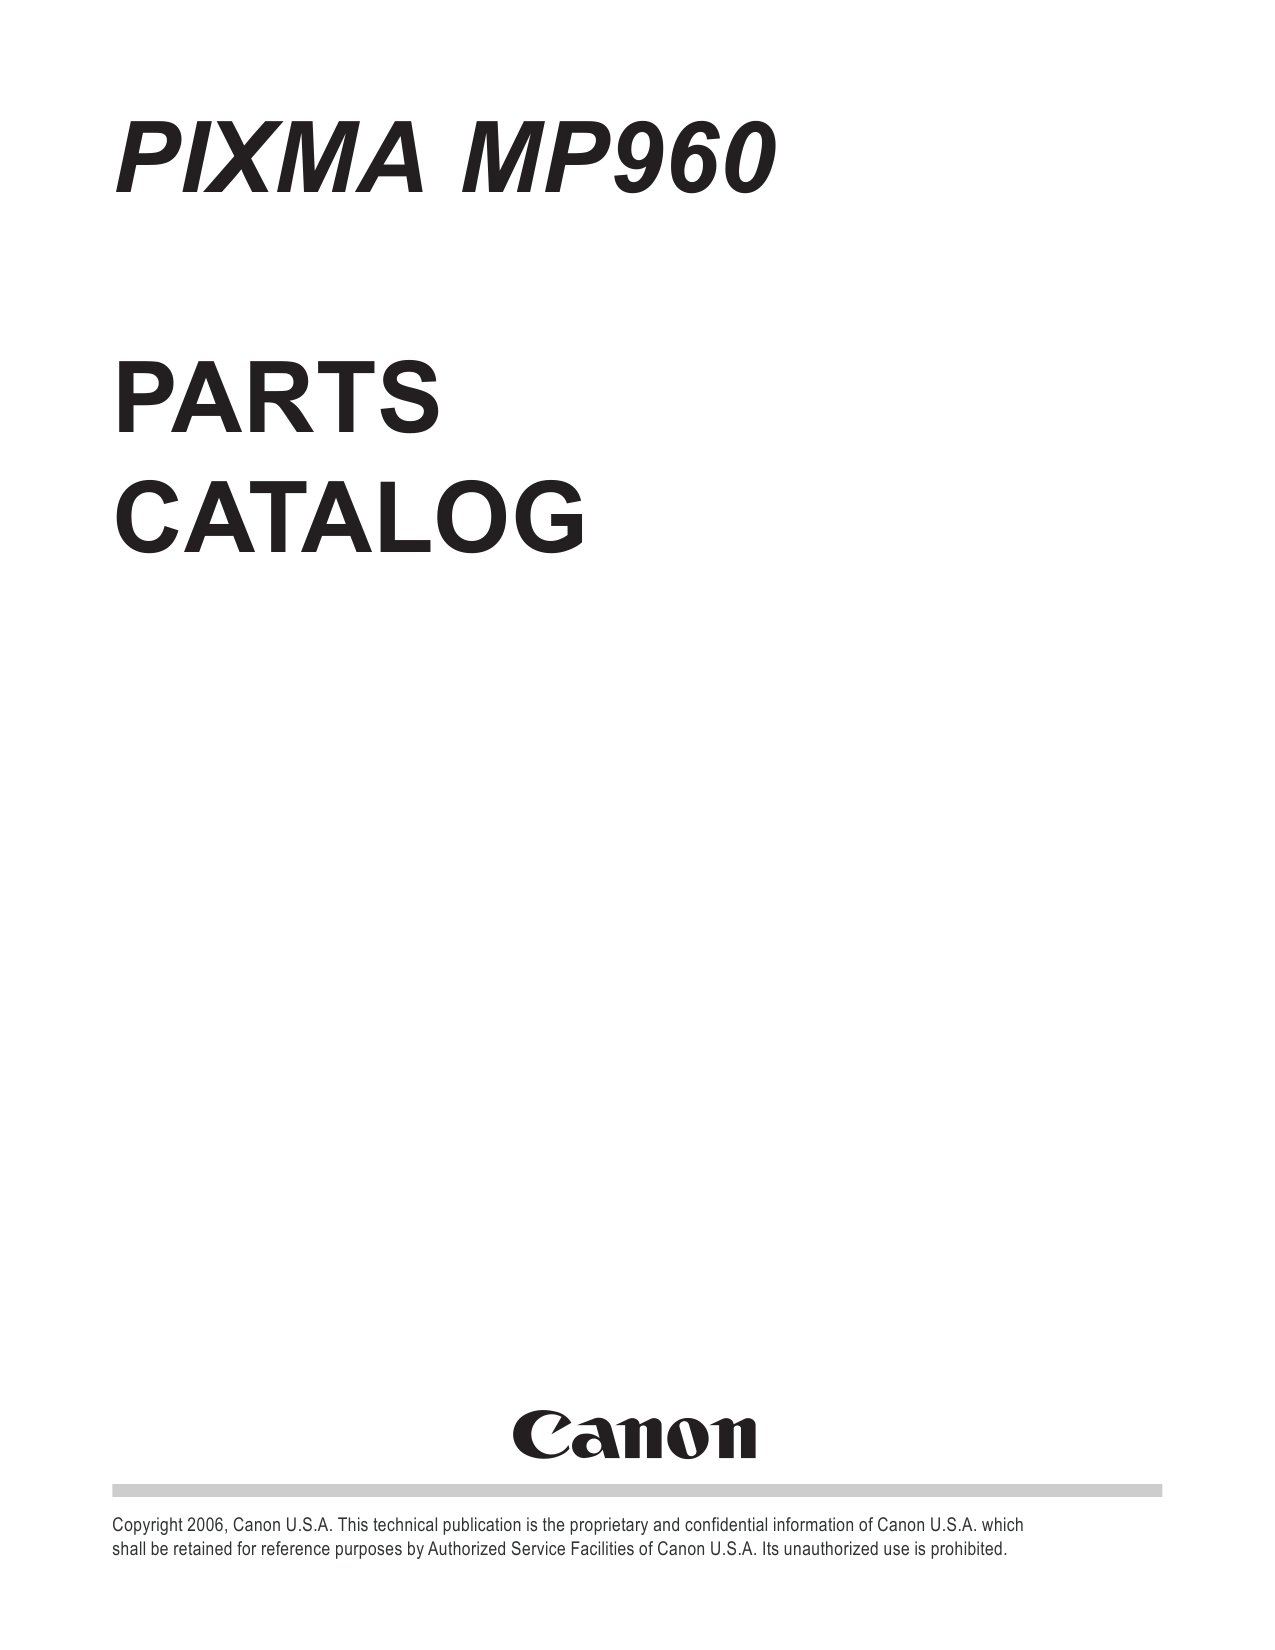 Canon PIXMA MP960 Parts Catalog